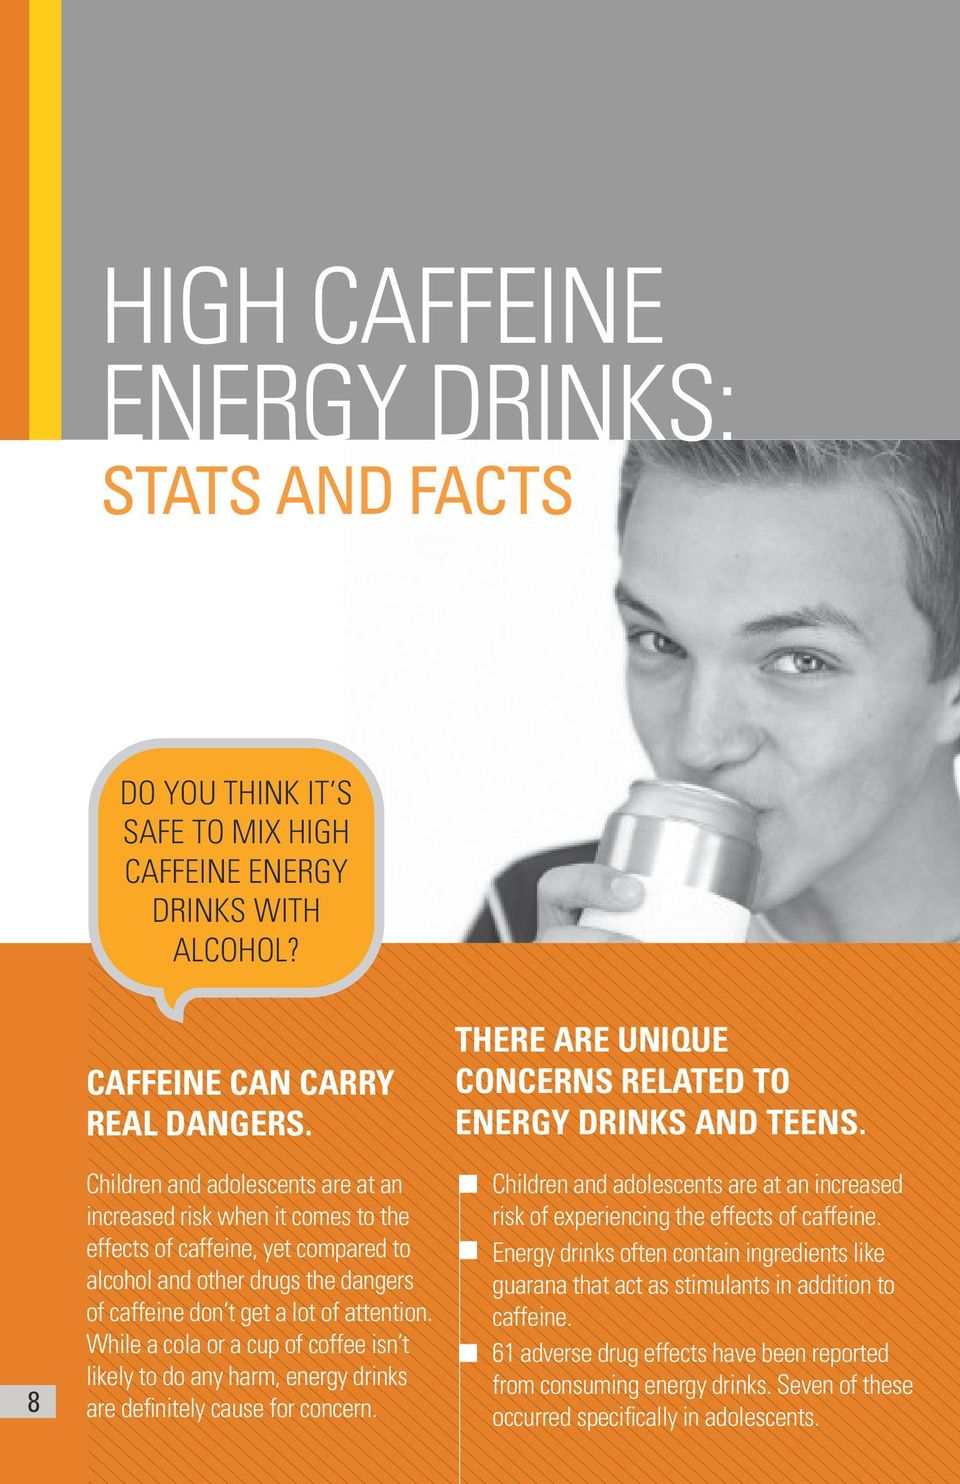 While a cola or a cup of coffee isn t likely to do any harm, energy drinks are definitely cause for concern. THERE ARE UNIQUE CONCERNS RELATED TO ENERGY DRINKS AND TEENS.